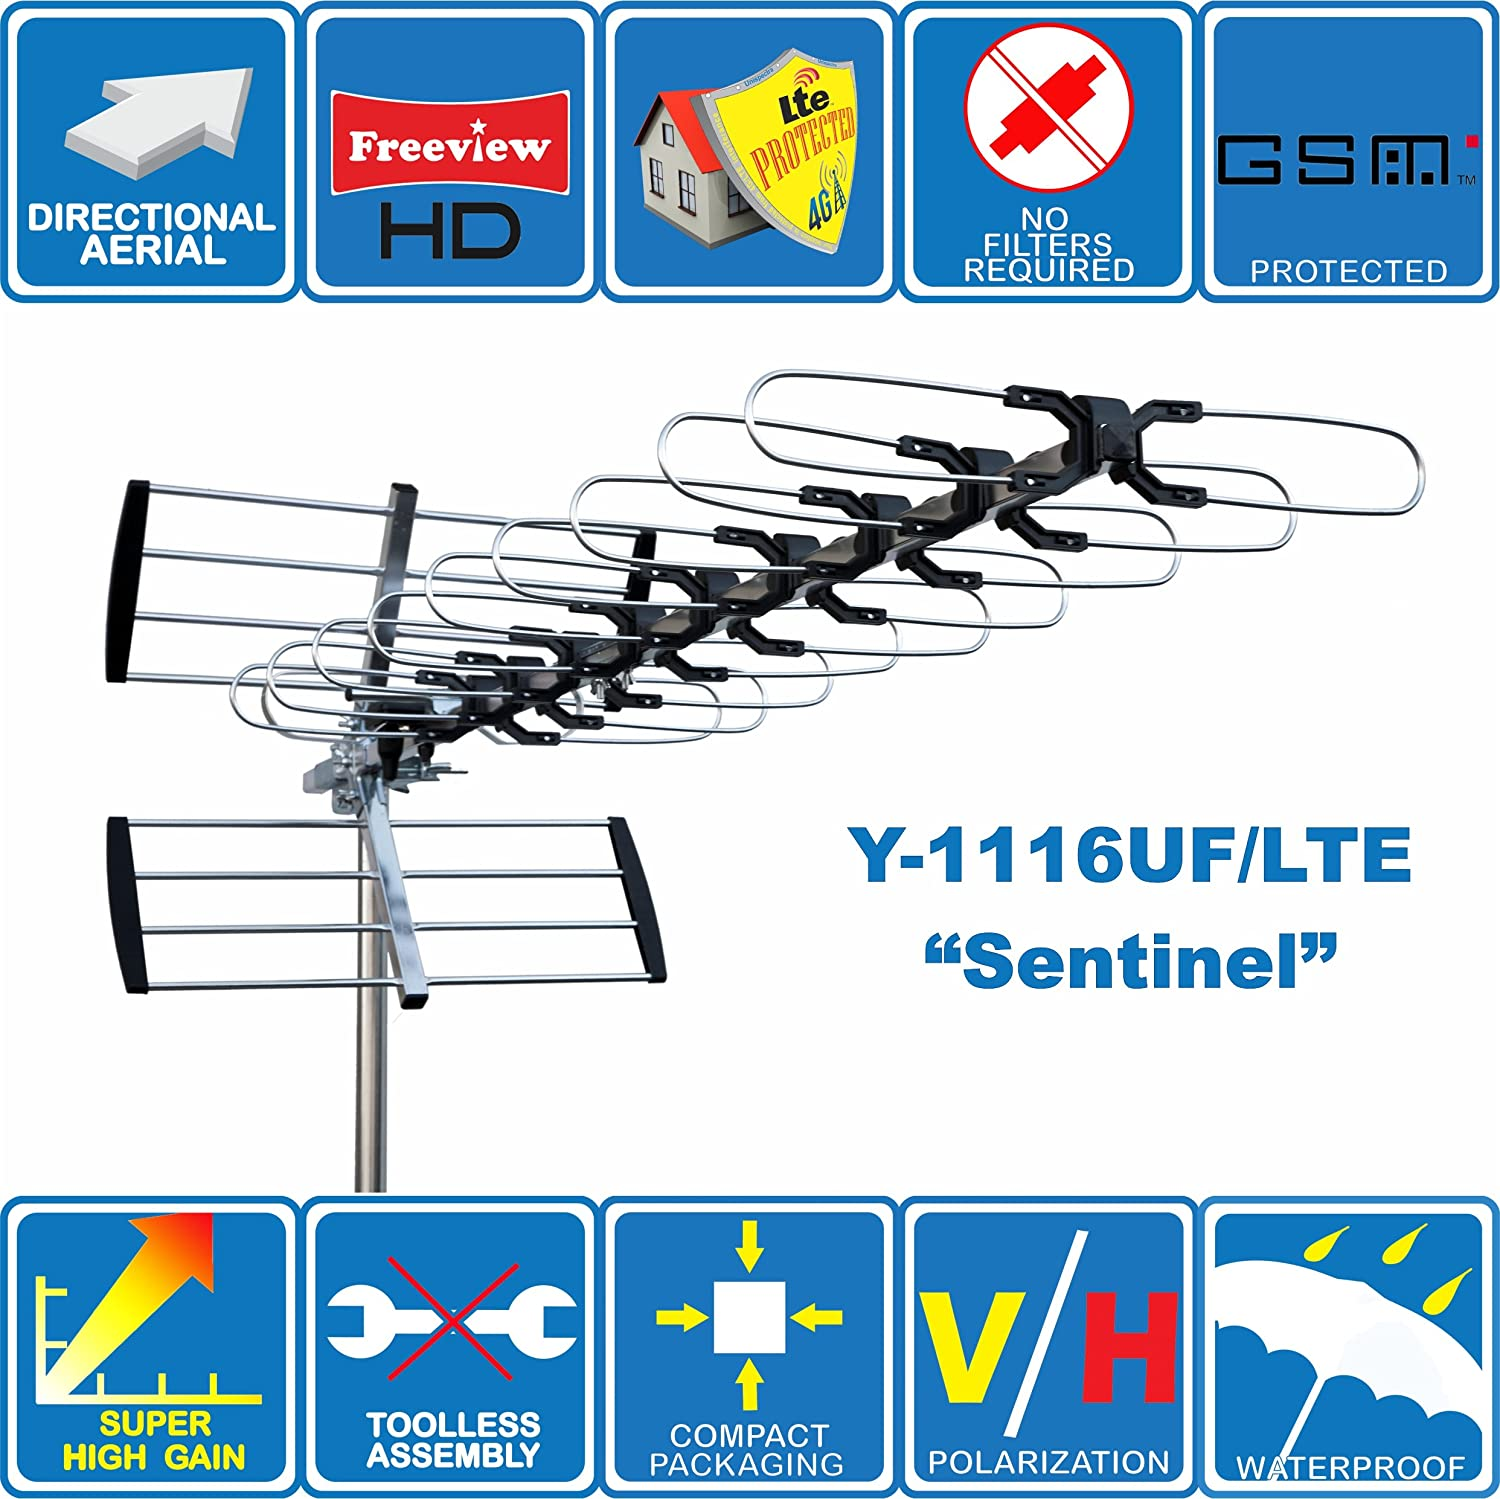 Sentinel 4g Lte Ready Super High Gain 52 Element 500 Wiring Diagram Electronics